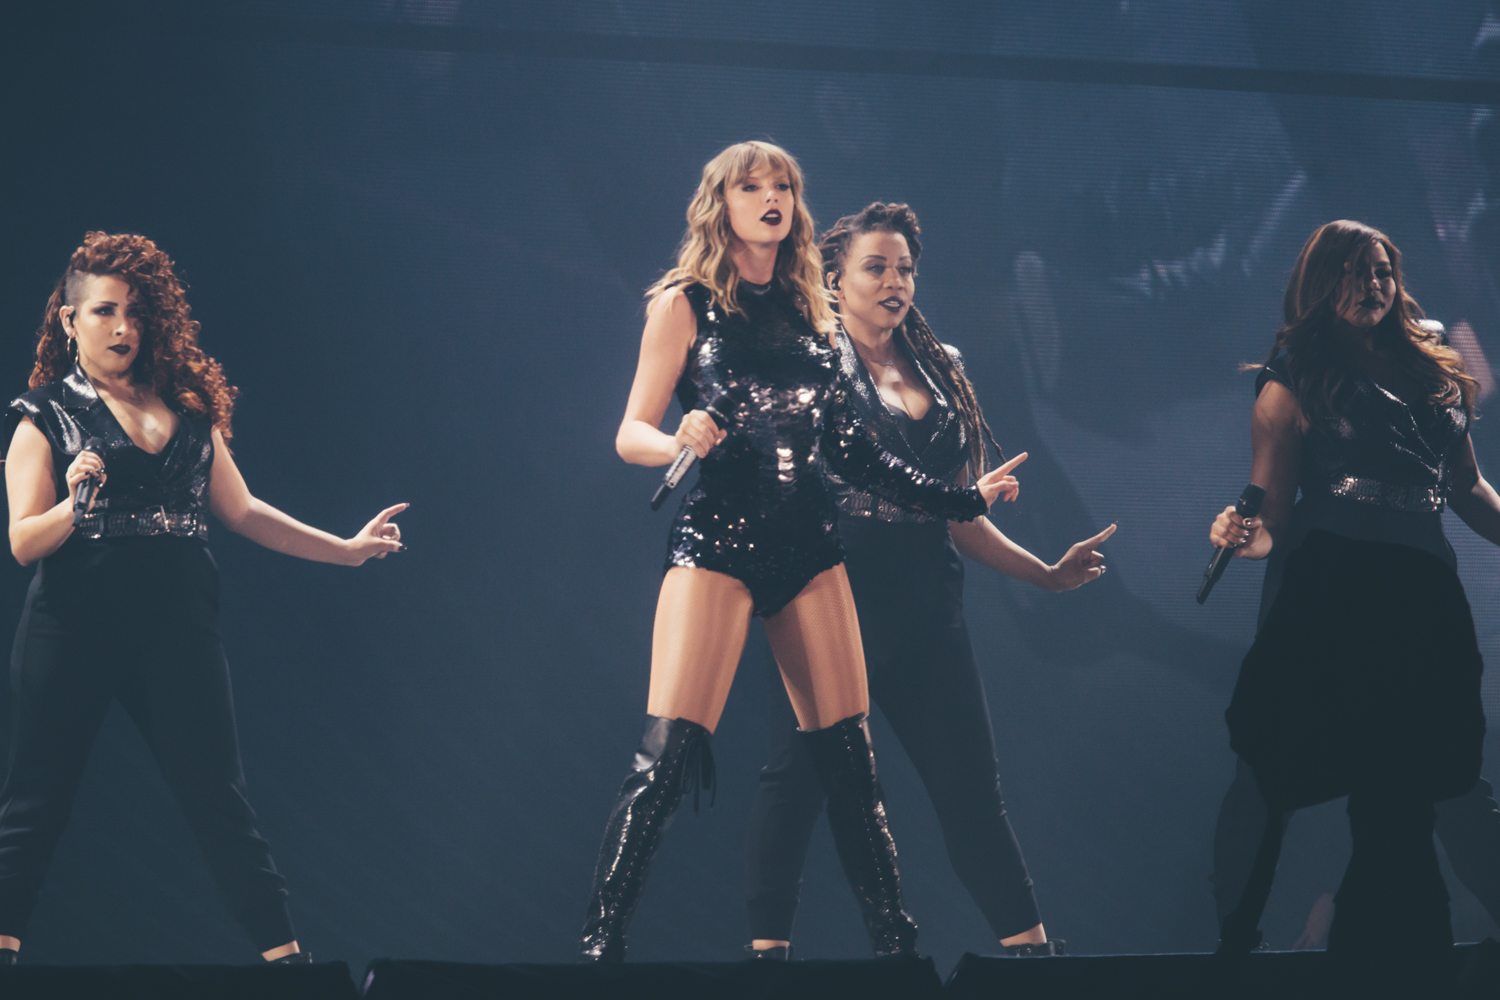 <p>Taylor Swift brought her &quot;Reputation&quot; tour to CenturyLink tonight (May 22, 2018). Over 60,000 people were expected to be in and around the SoDo area in Seattle. Despite the traffic, it was everything we could have ever imagined! (Image: Sunita Martini / Seattle Refined)</p>